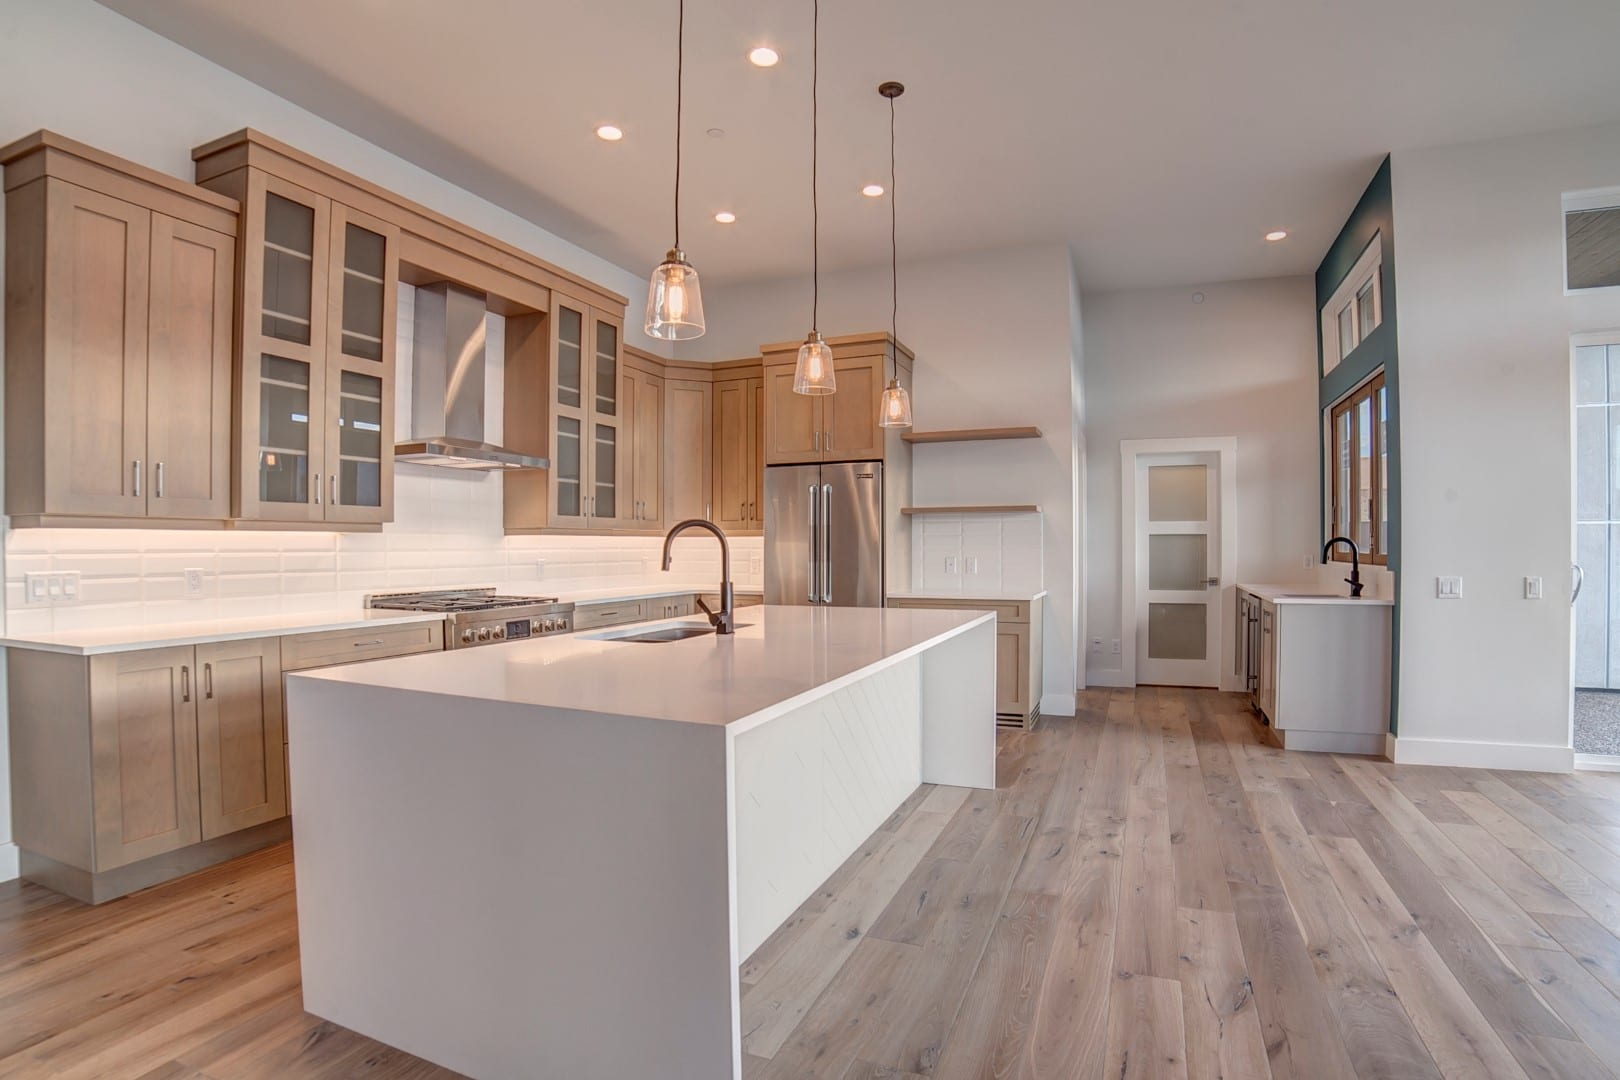 Mckinley beach show home kitchen rykon construction for Kitchen cabinets kelowna